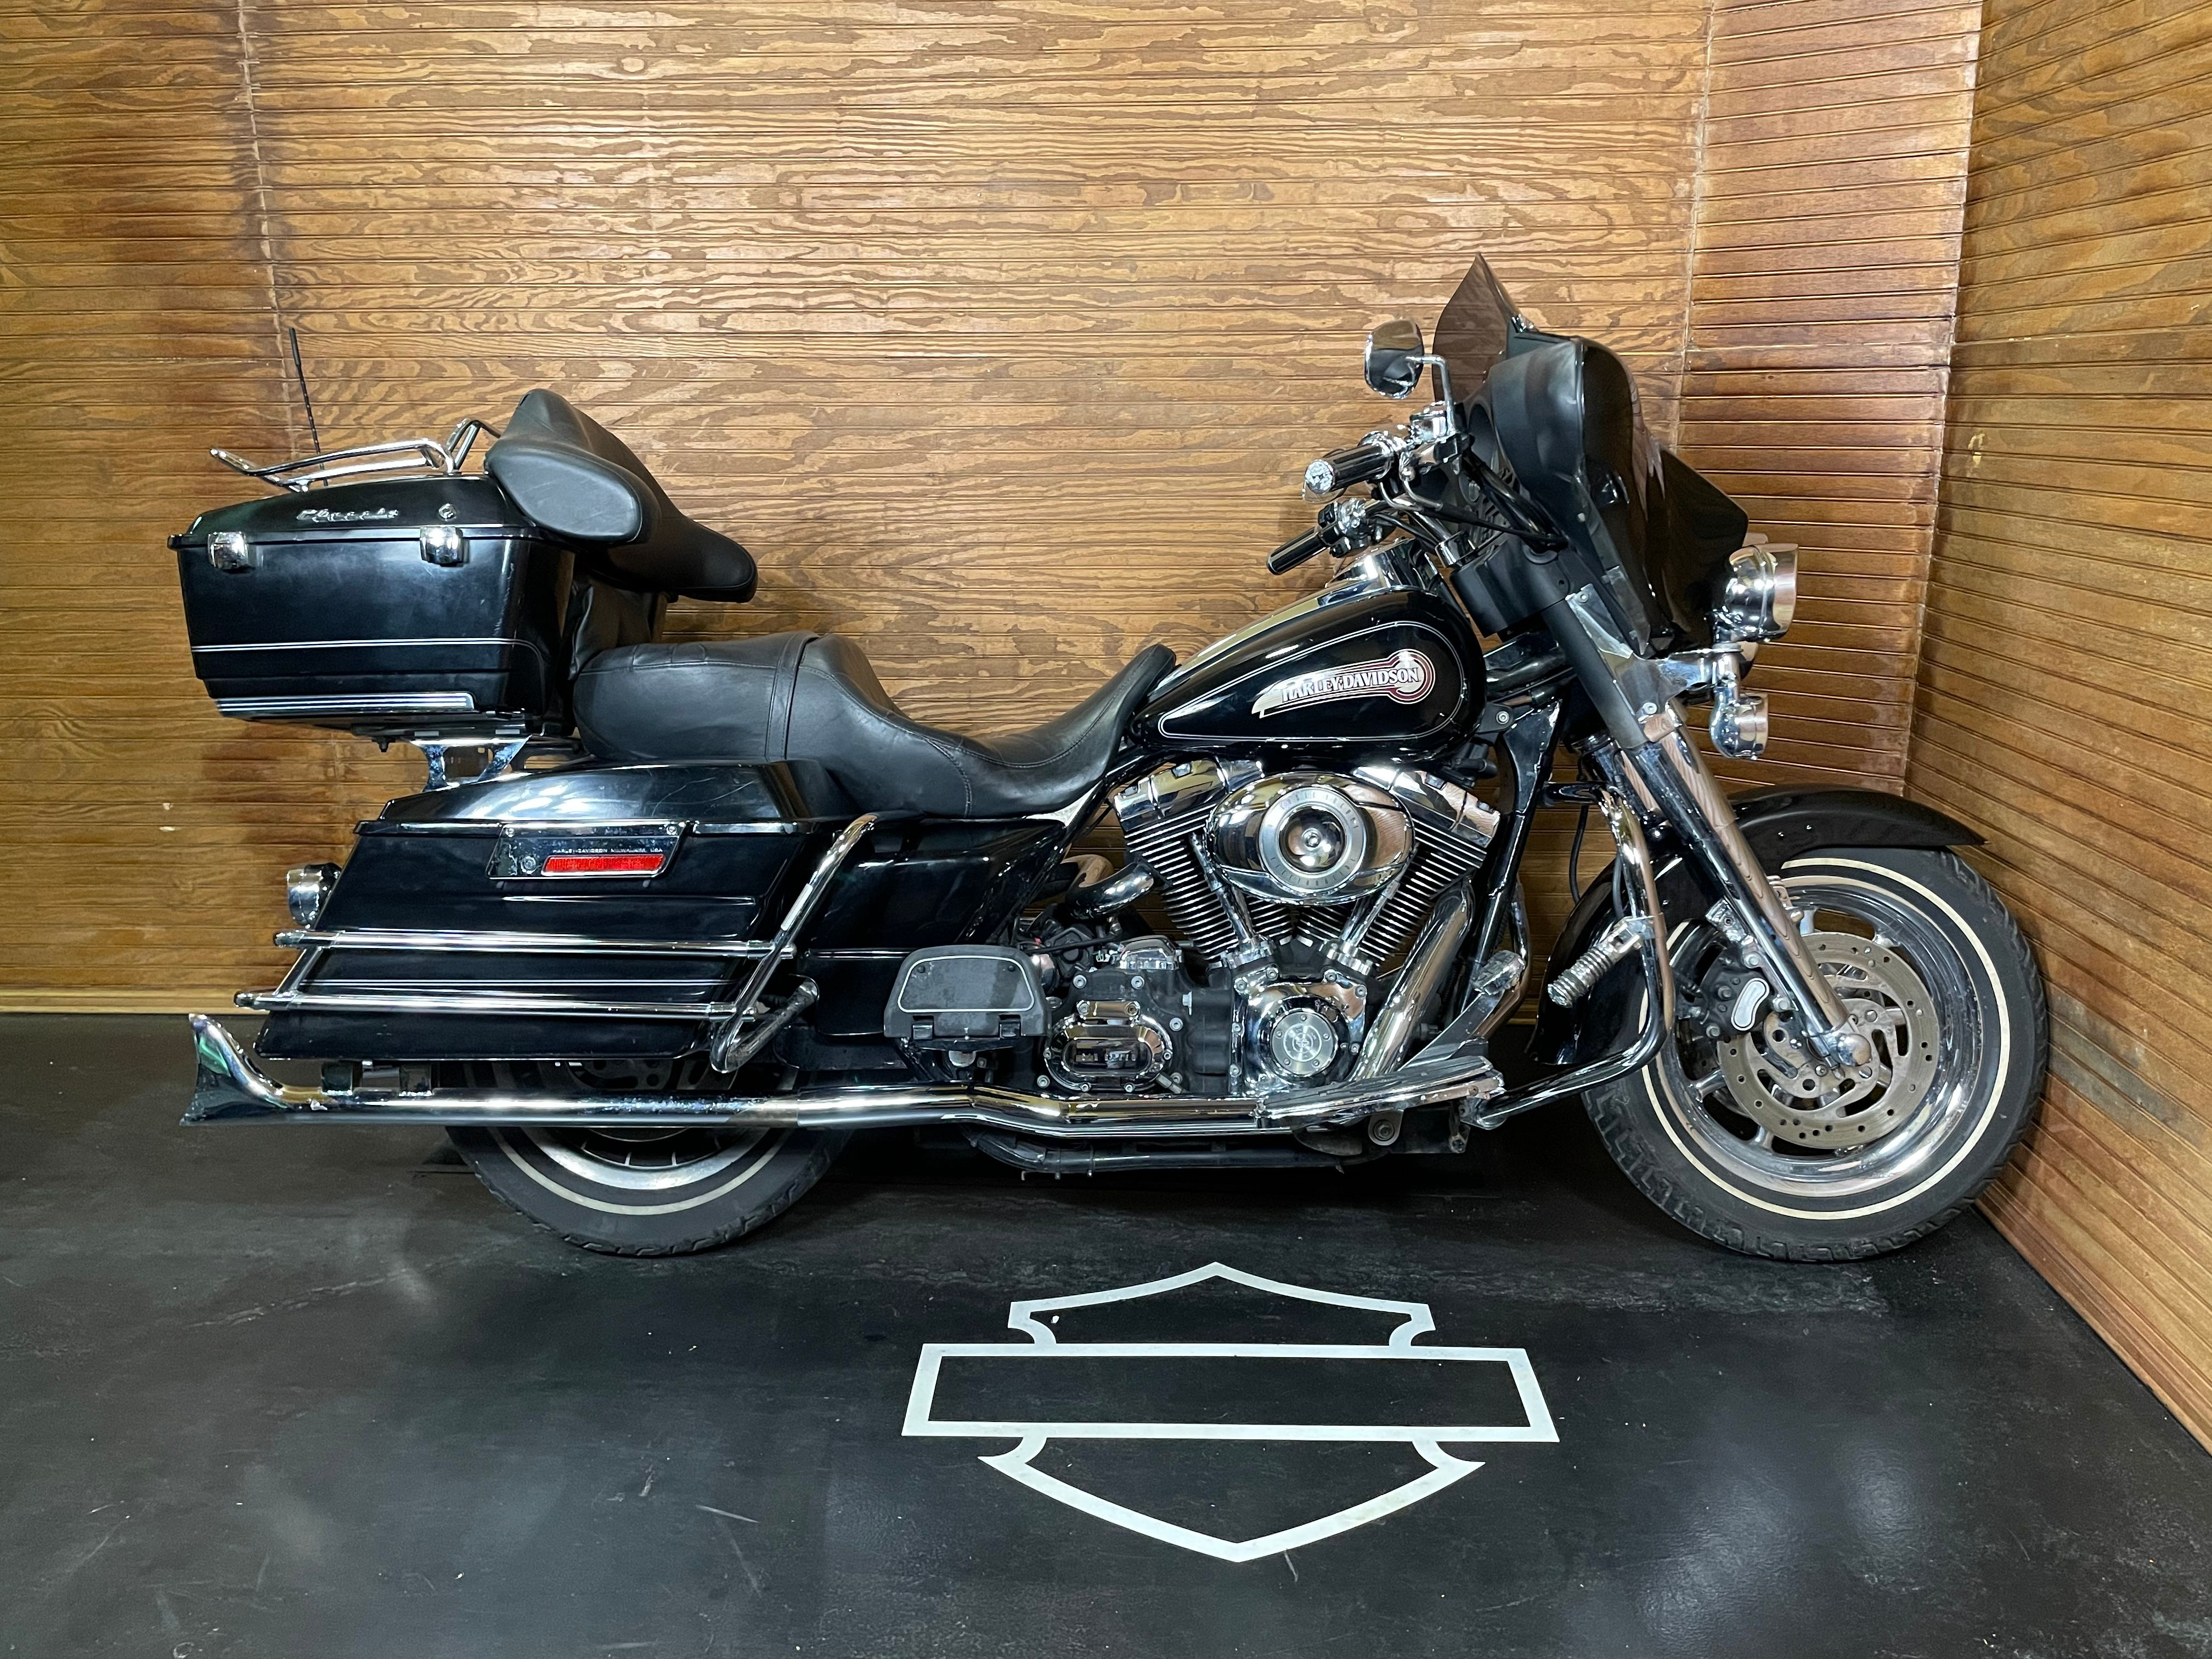 Pre-Owned 2007 Harley-Davidson Electra Glide Classic